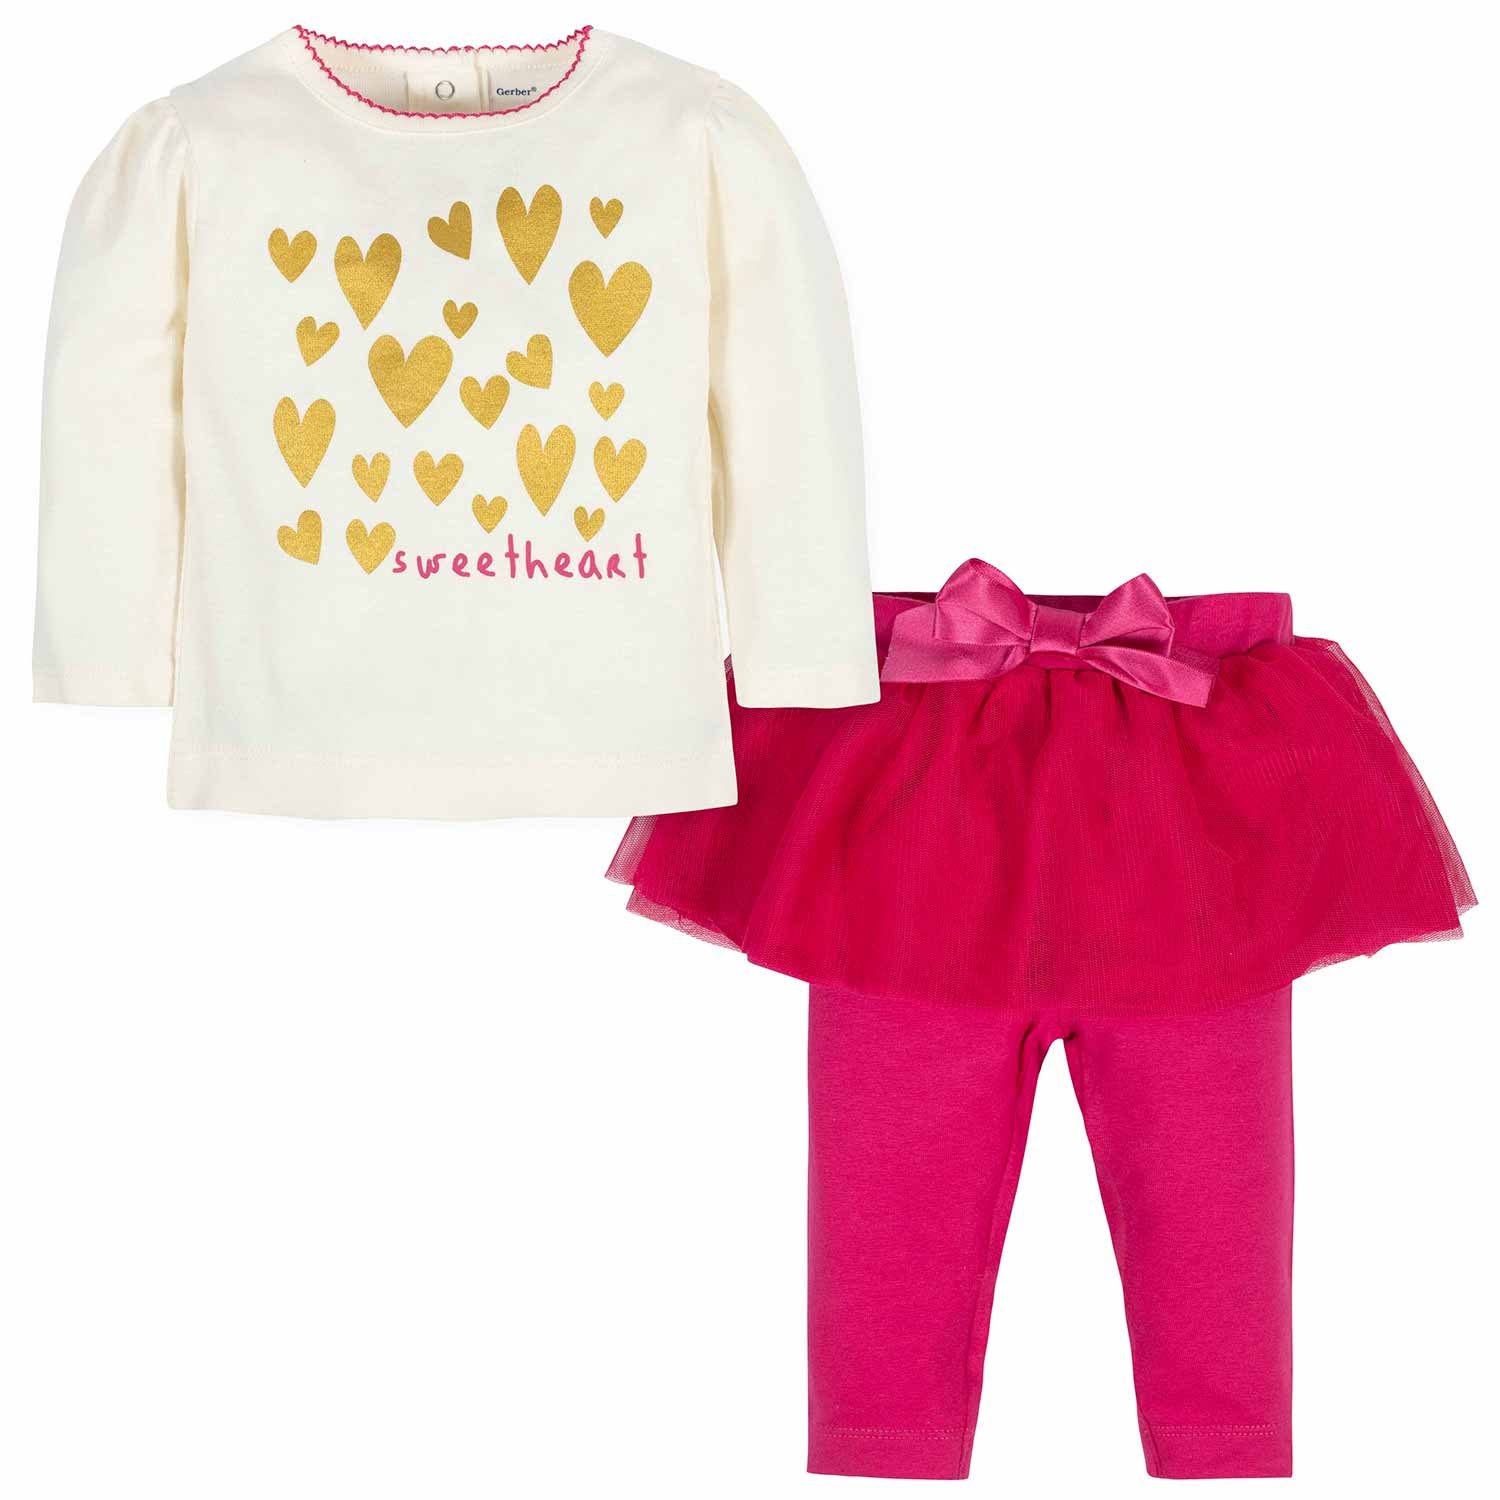 2-Piece Baby Girls Sweetheart Shirt and Tutu Legging Set